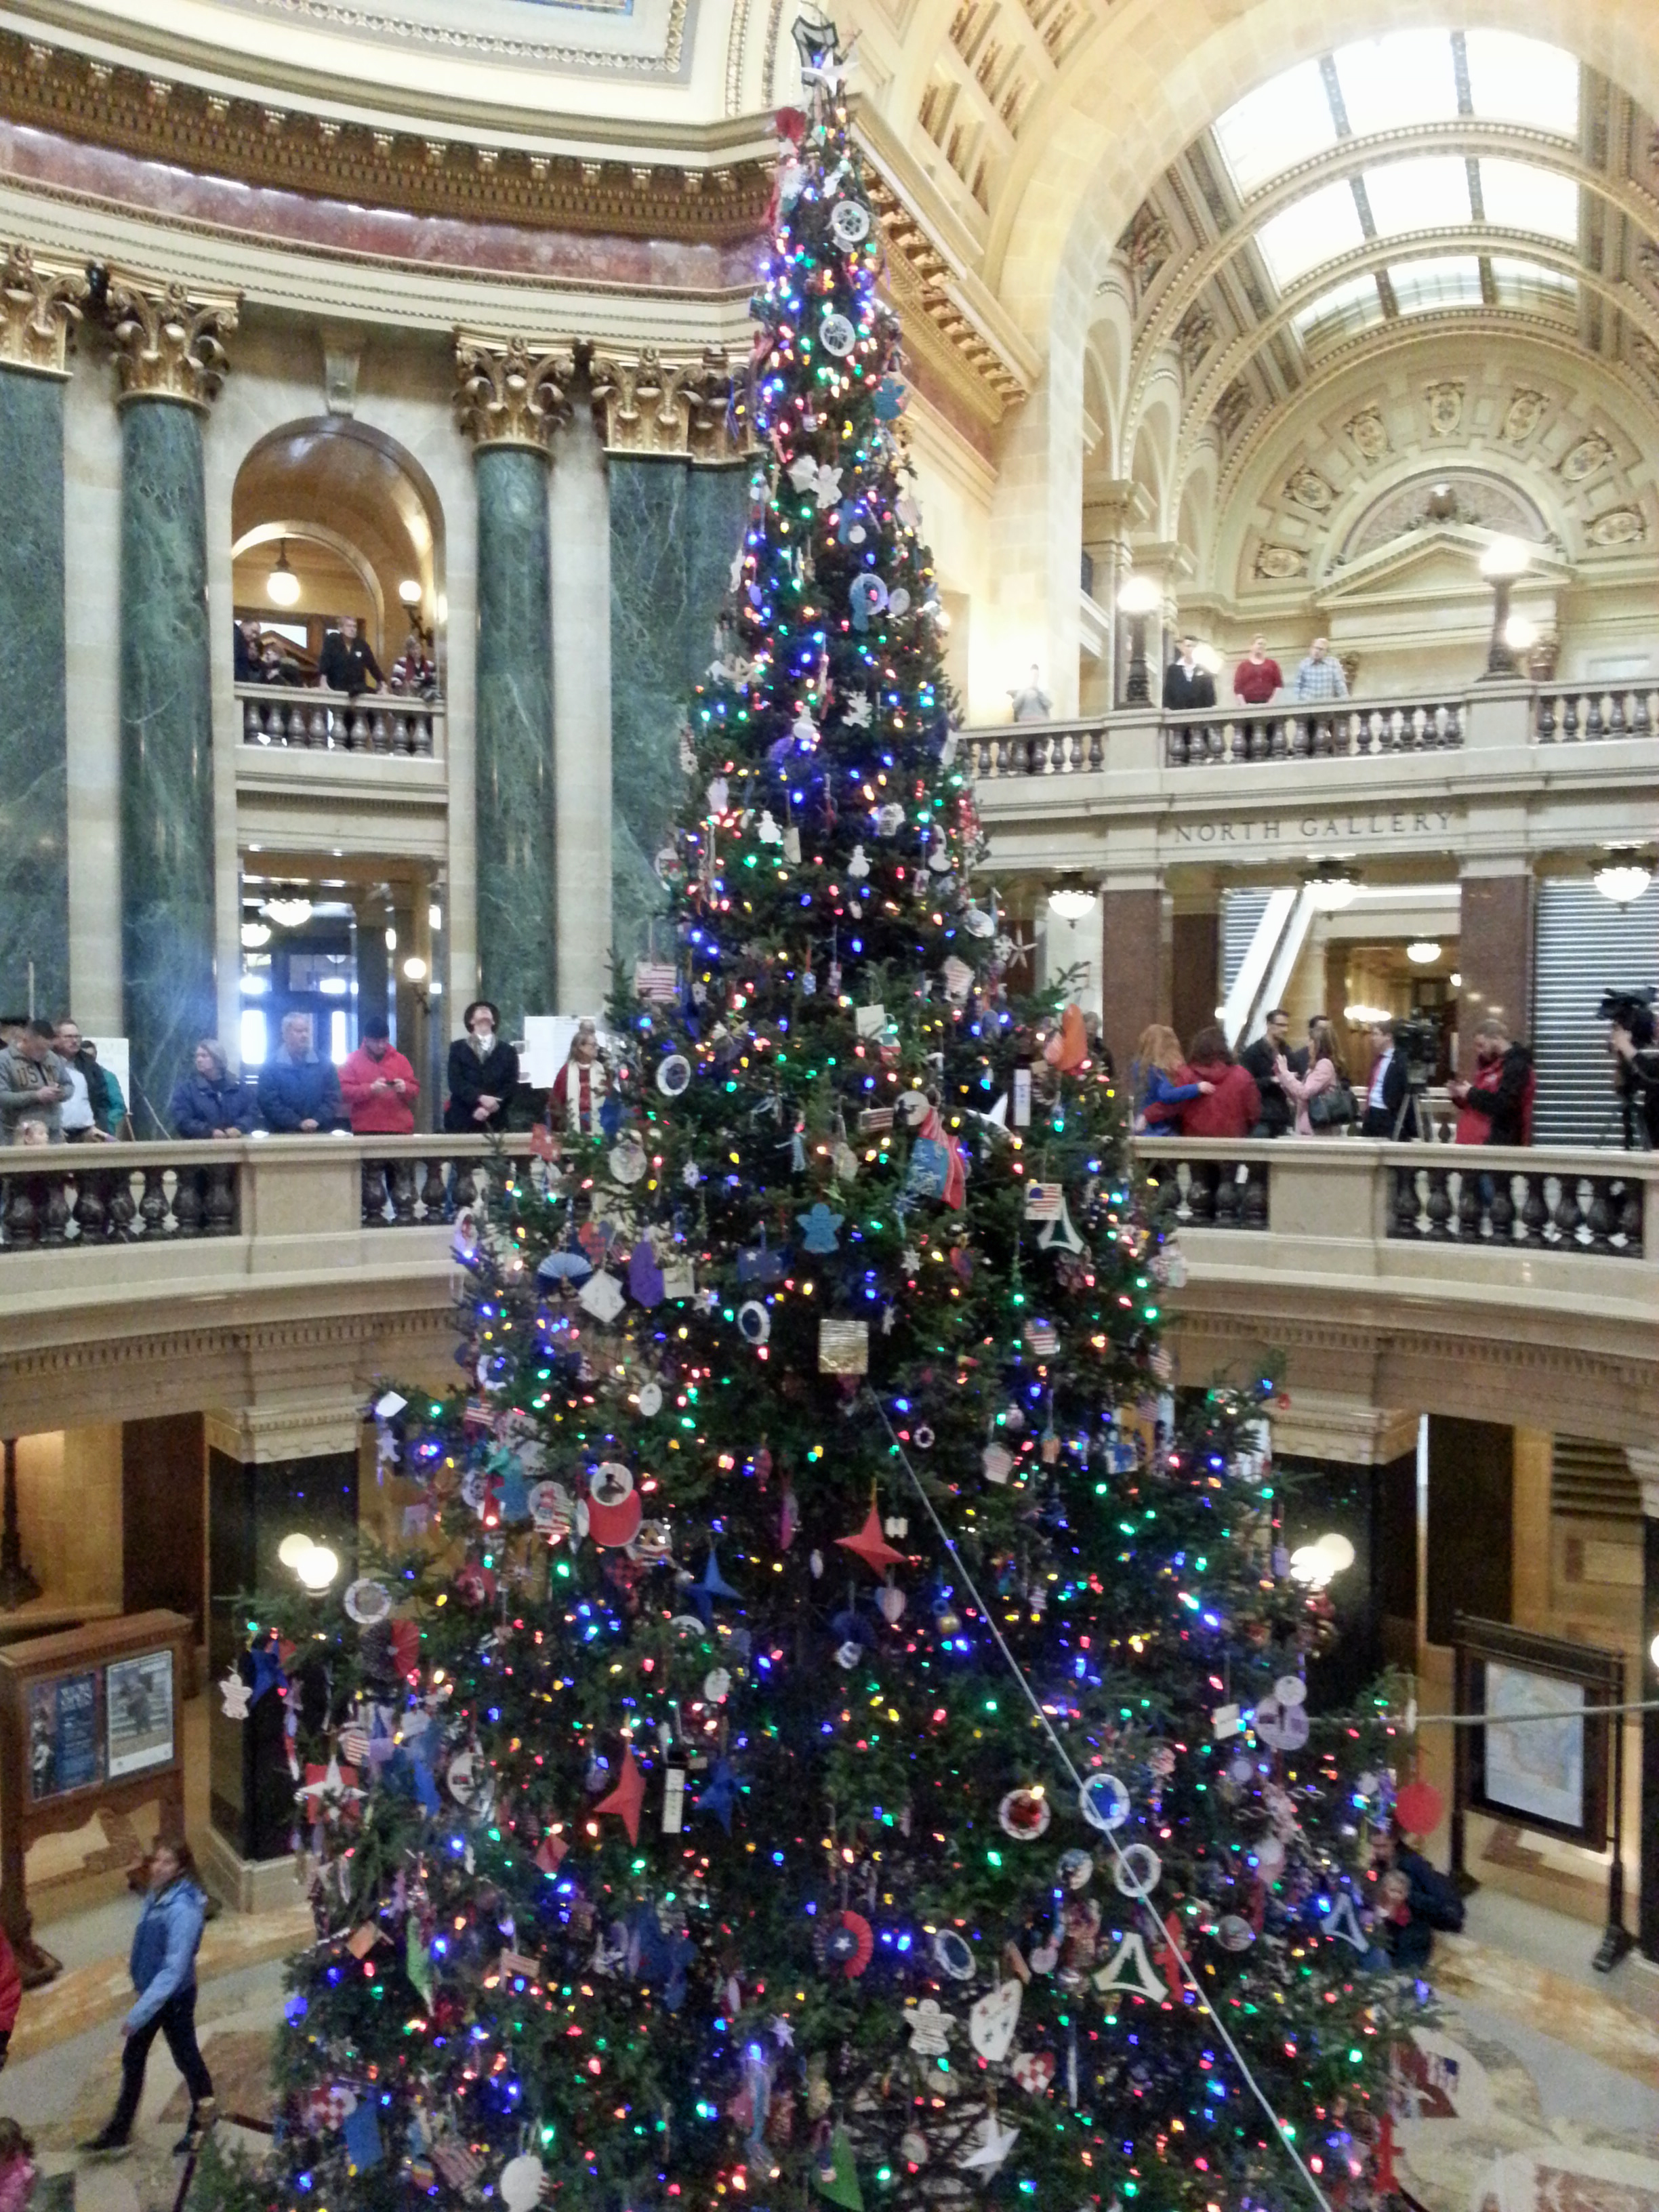 Capitol Christmas Tree.Wisconsin Capitol Christmas Tree To Come From Rhinelander